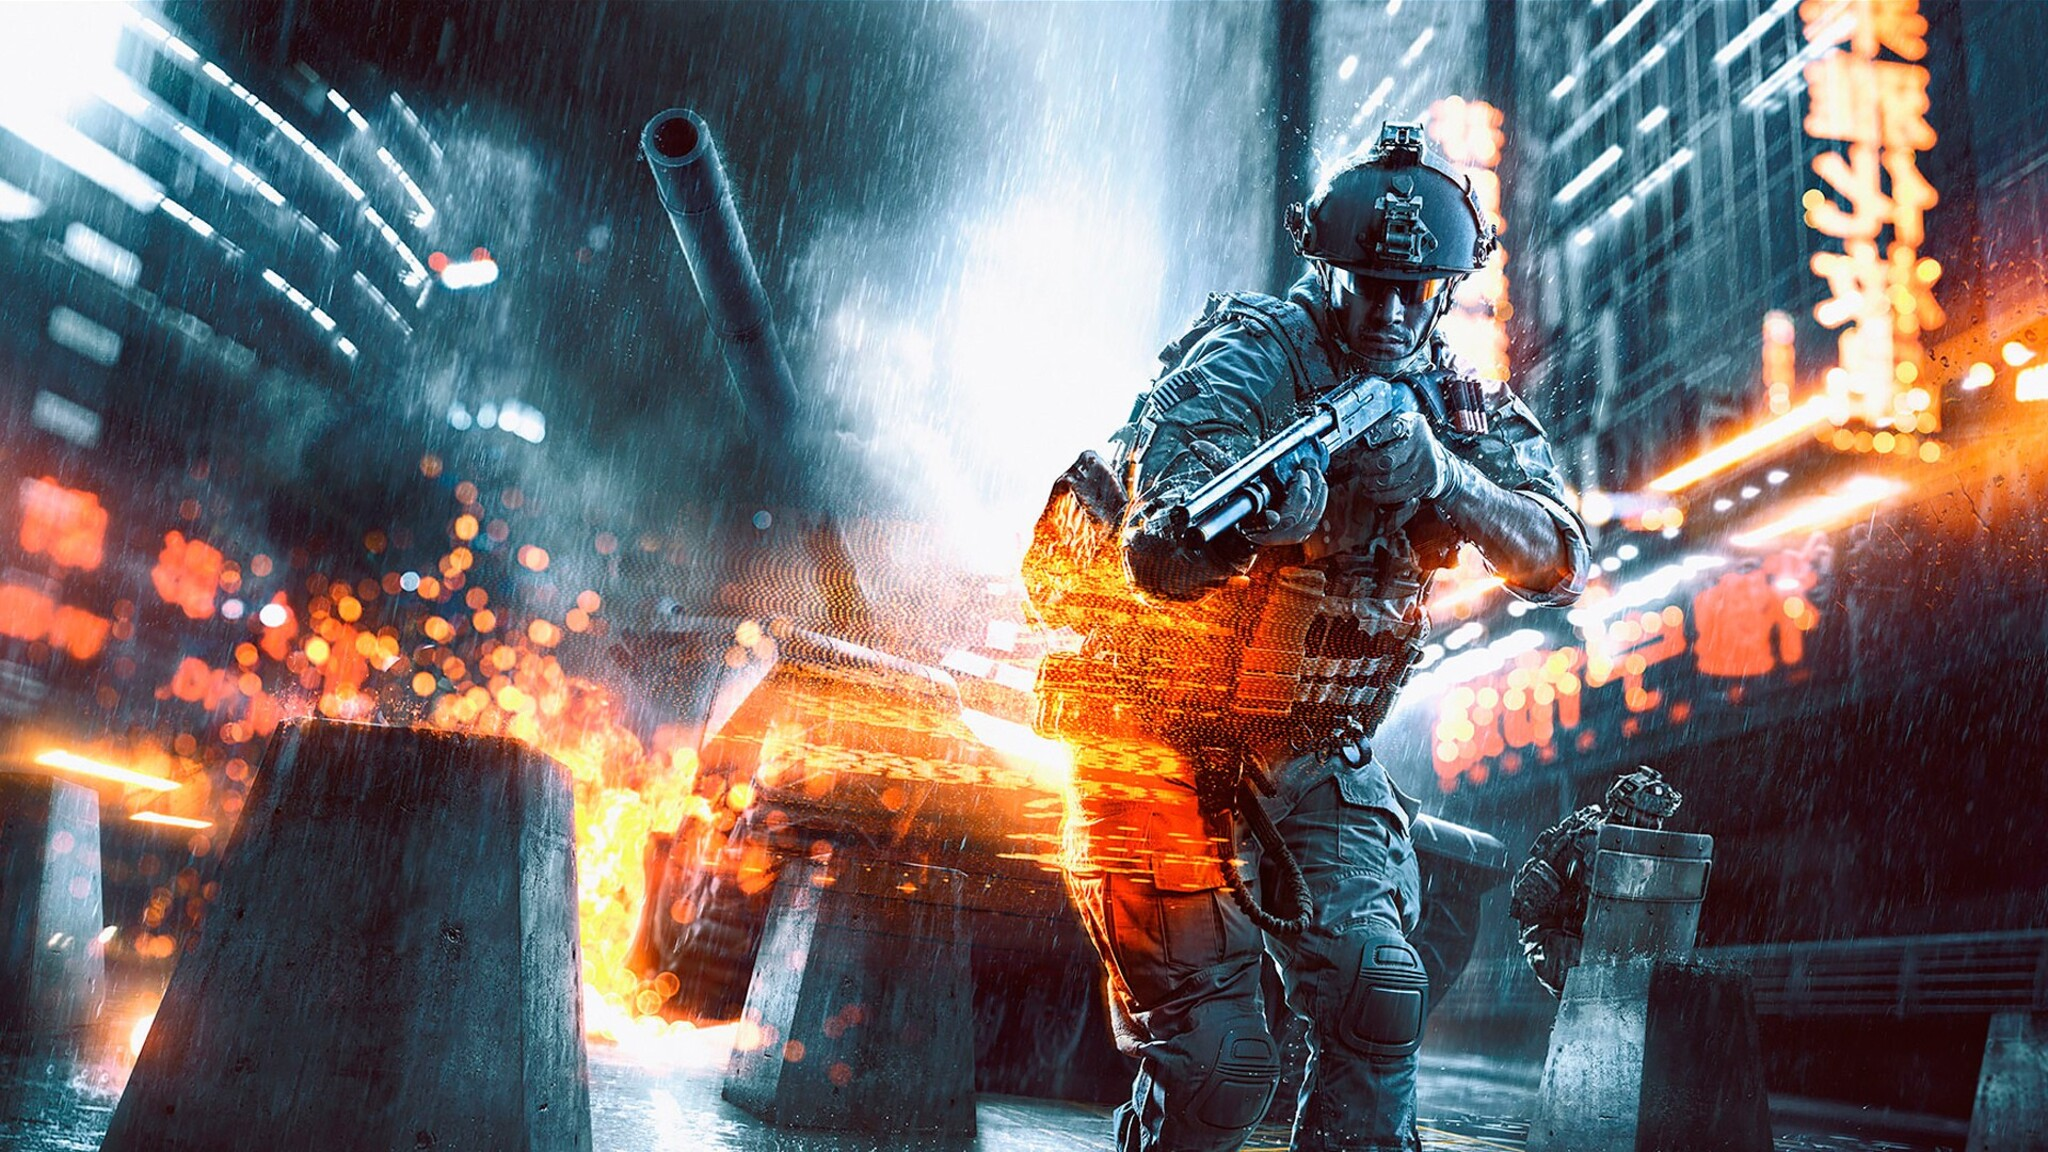 Download Wallpaper 1280x1280 Battlefield 4 Game Ea: 2048x1152 Battlefield 4 Game HD 2048x1152 Resolution HD 4k